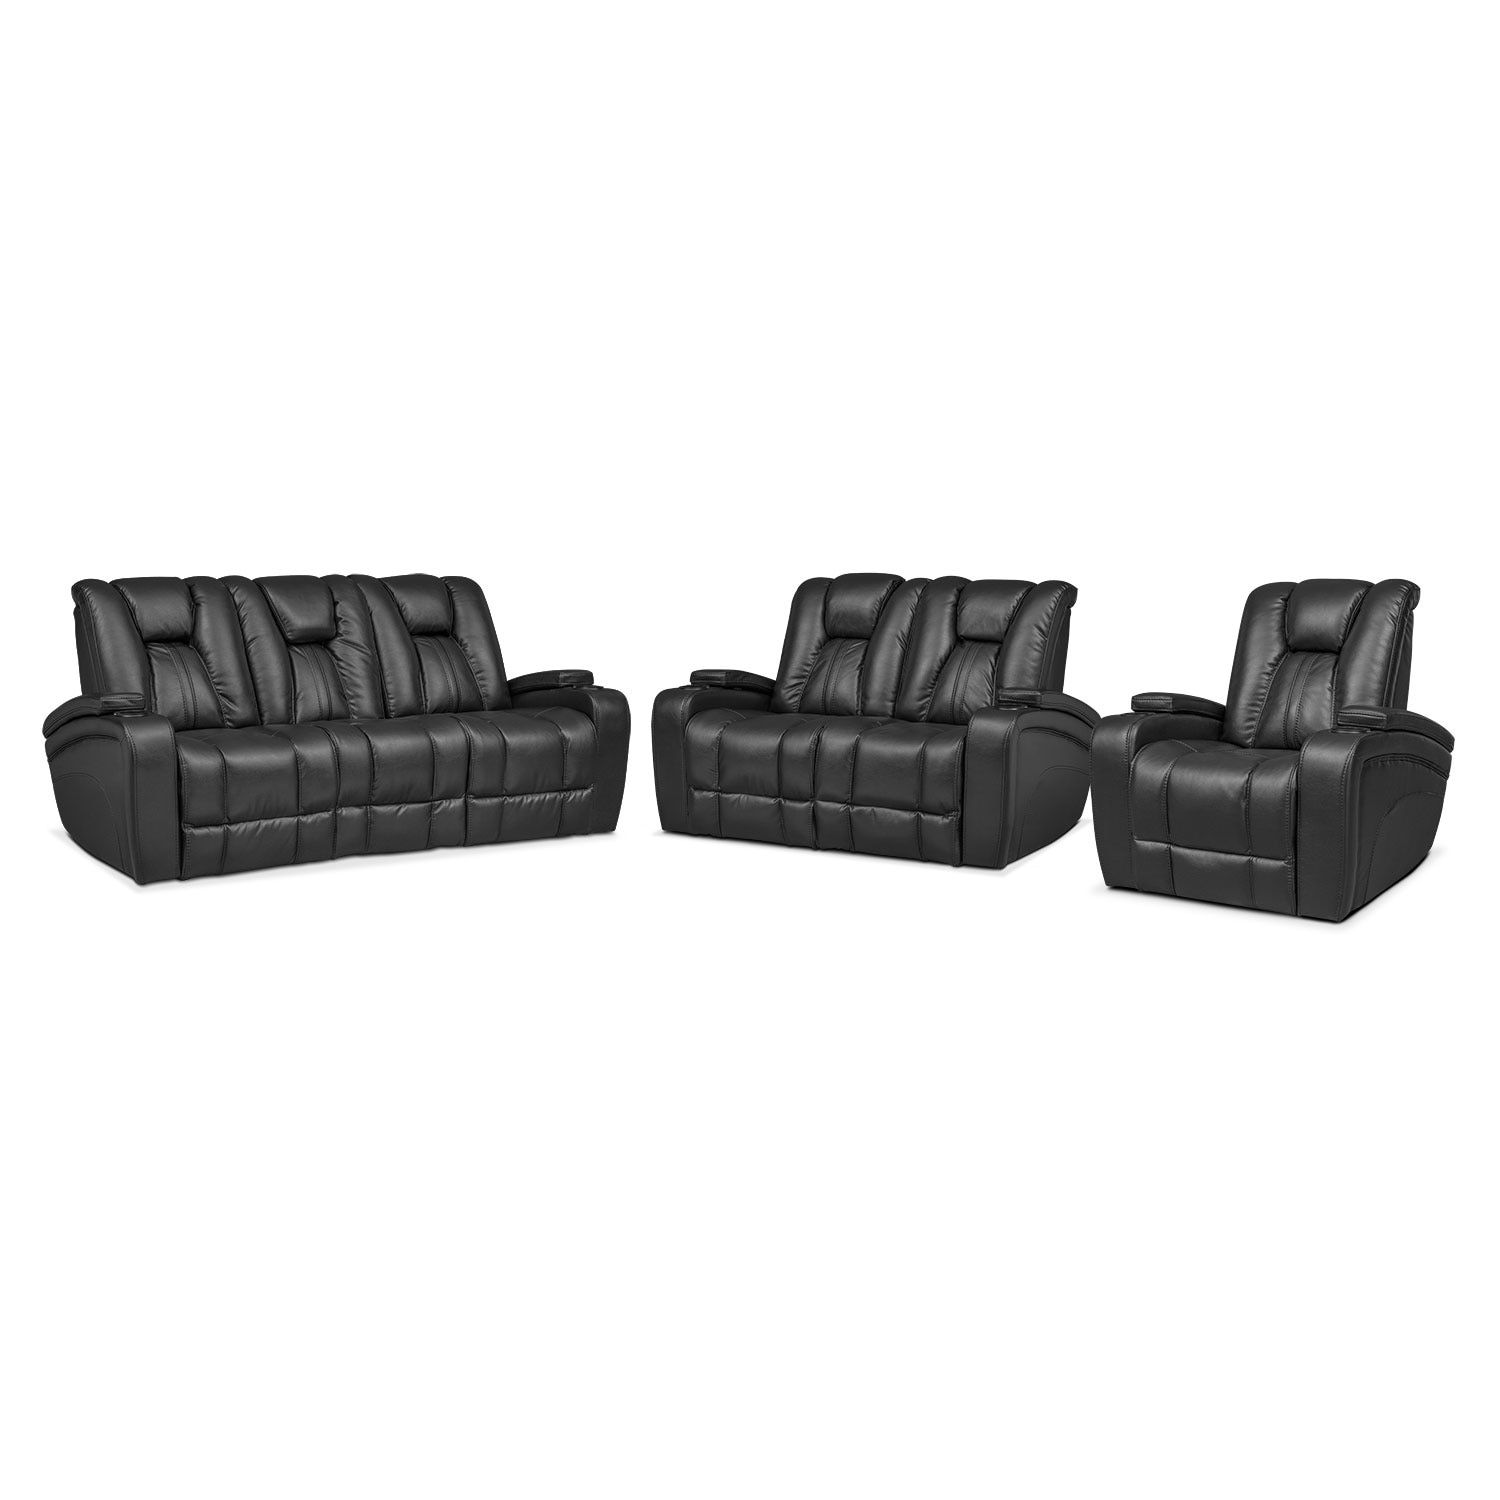 home loveseat furniture w black charging seat love furnishings with contemporary products rocking and reclining drink console port